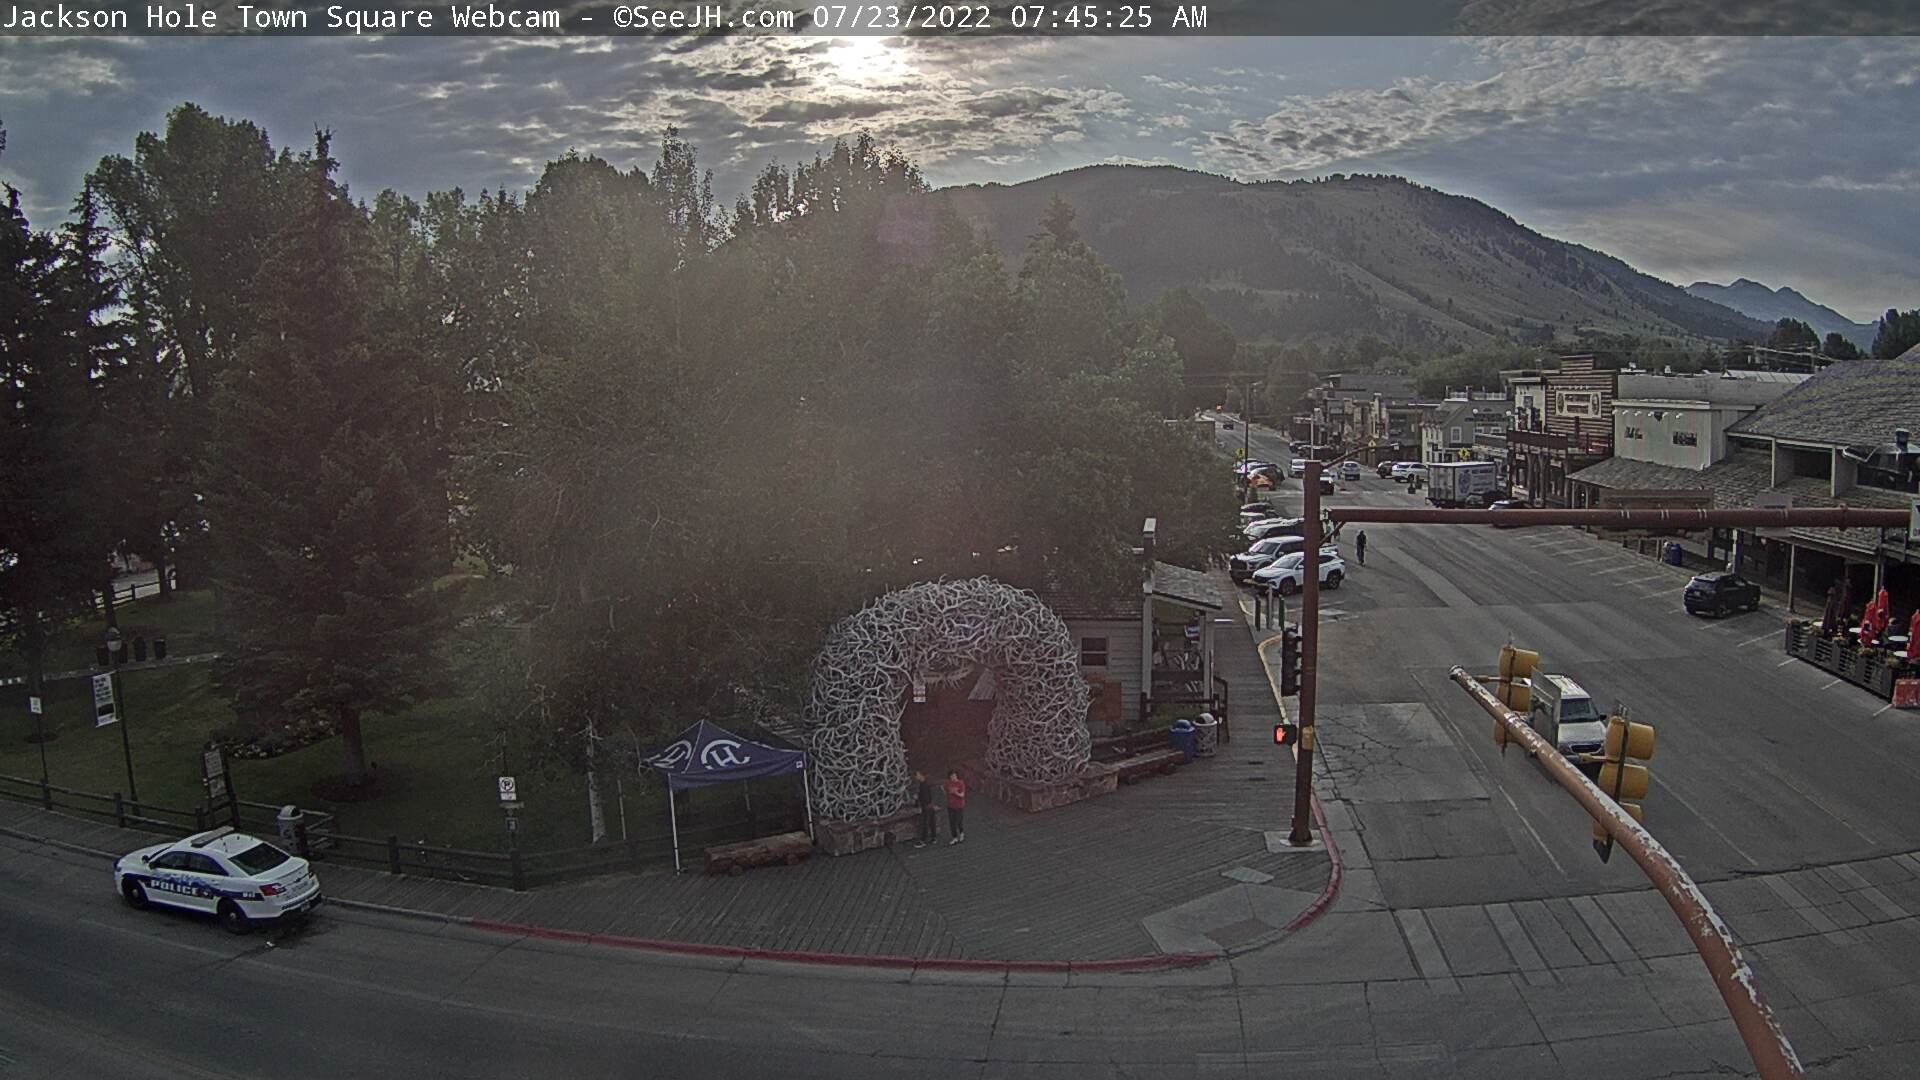 Jackson Hole Town Square Southwest Webcam Image